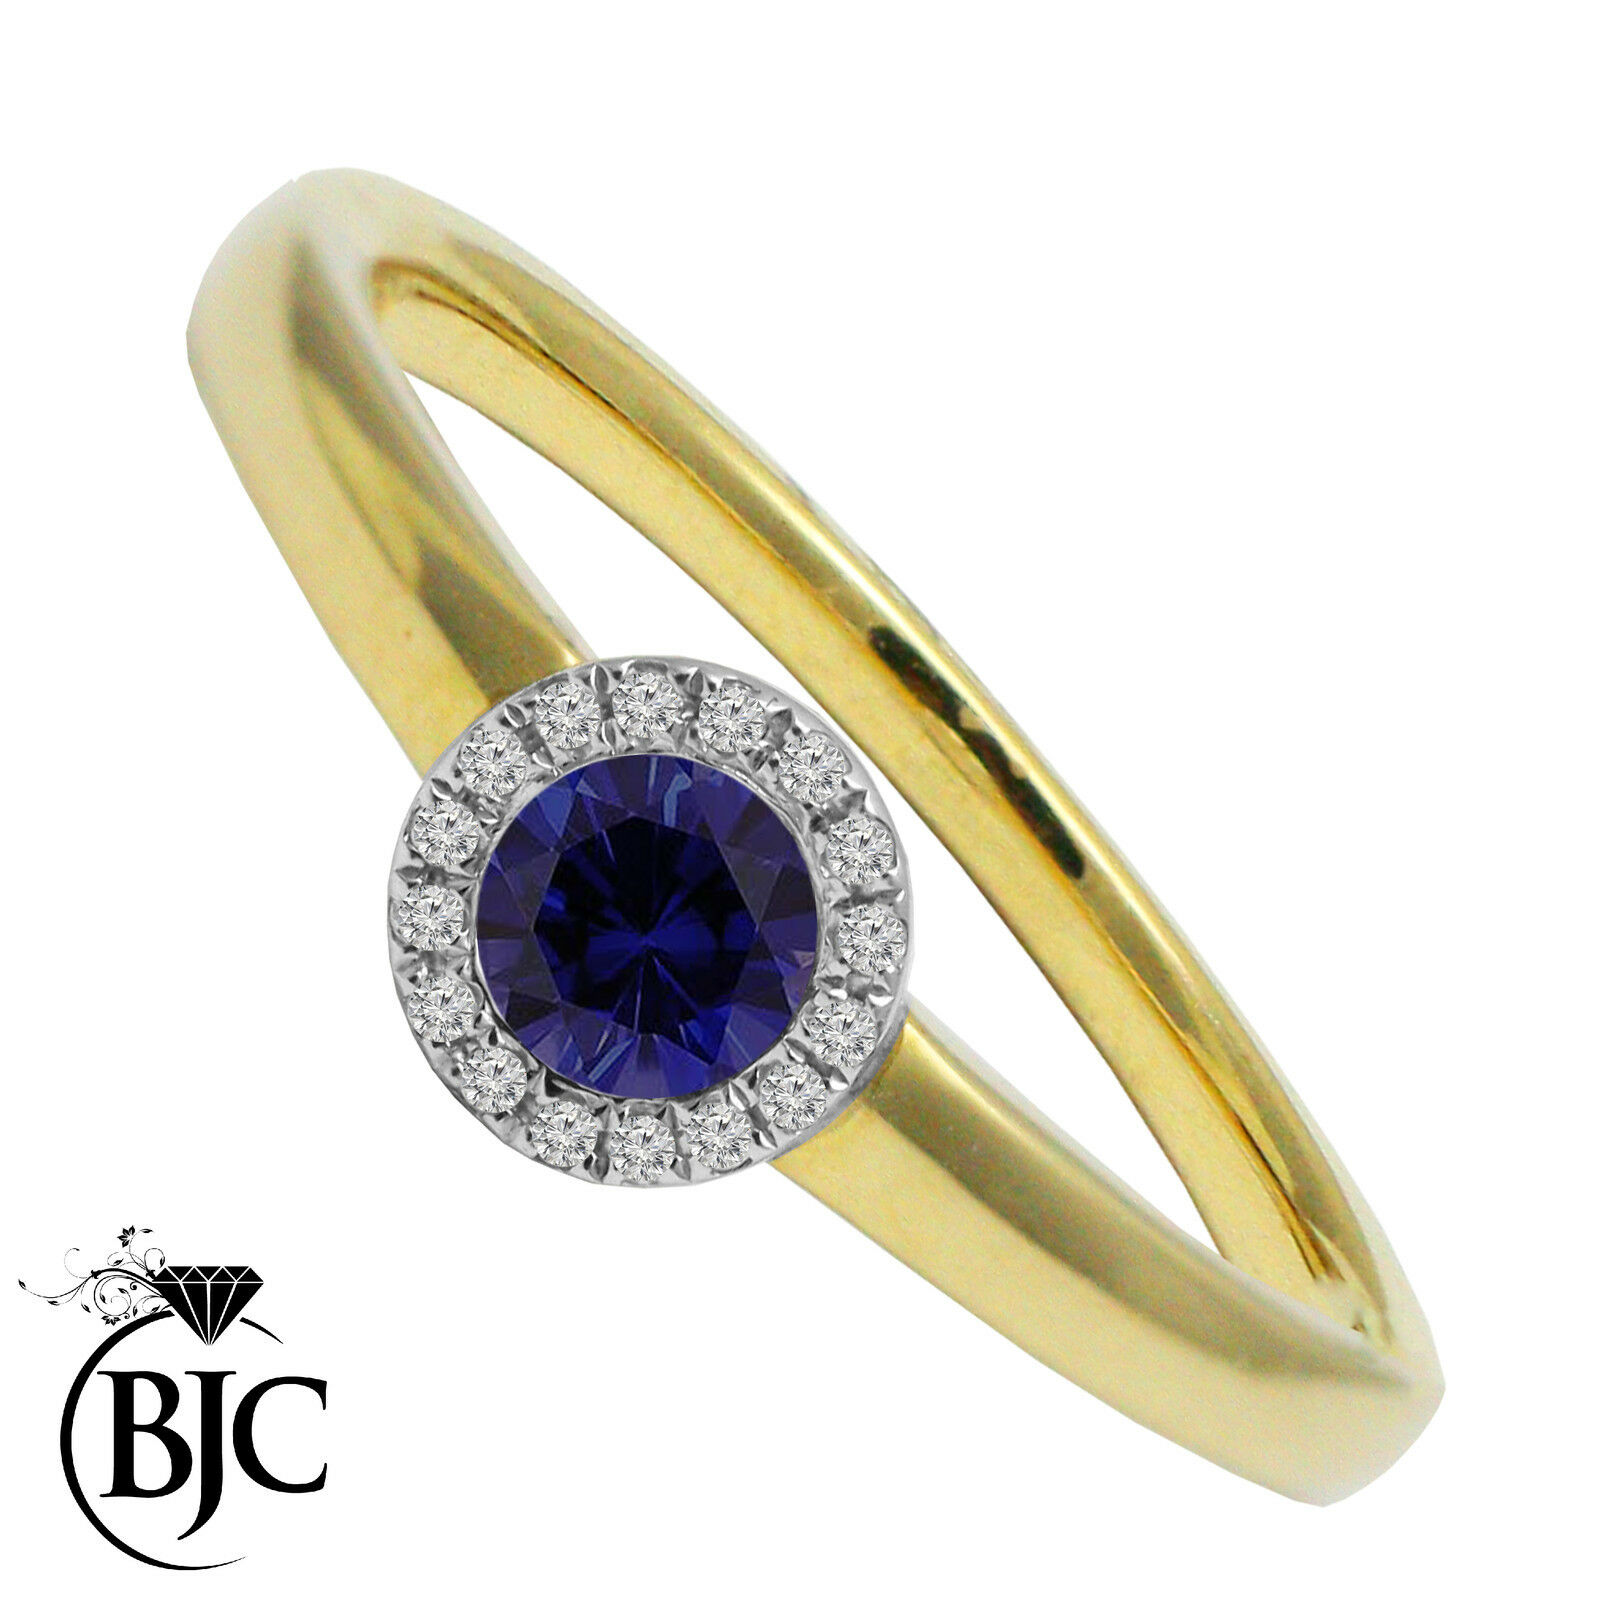 BJC® 9ct Yellow gold Sapphire & Diamond cluster size N engagement dress ring R59